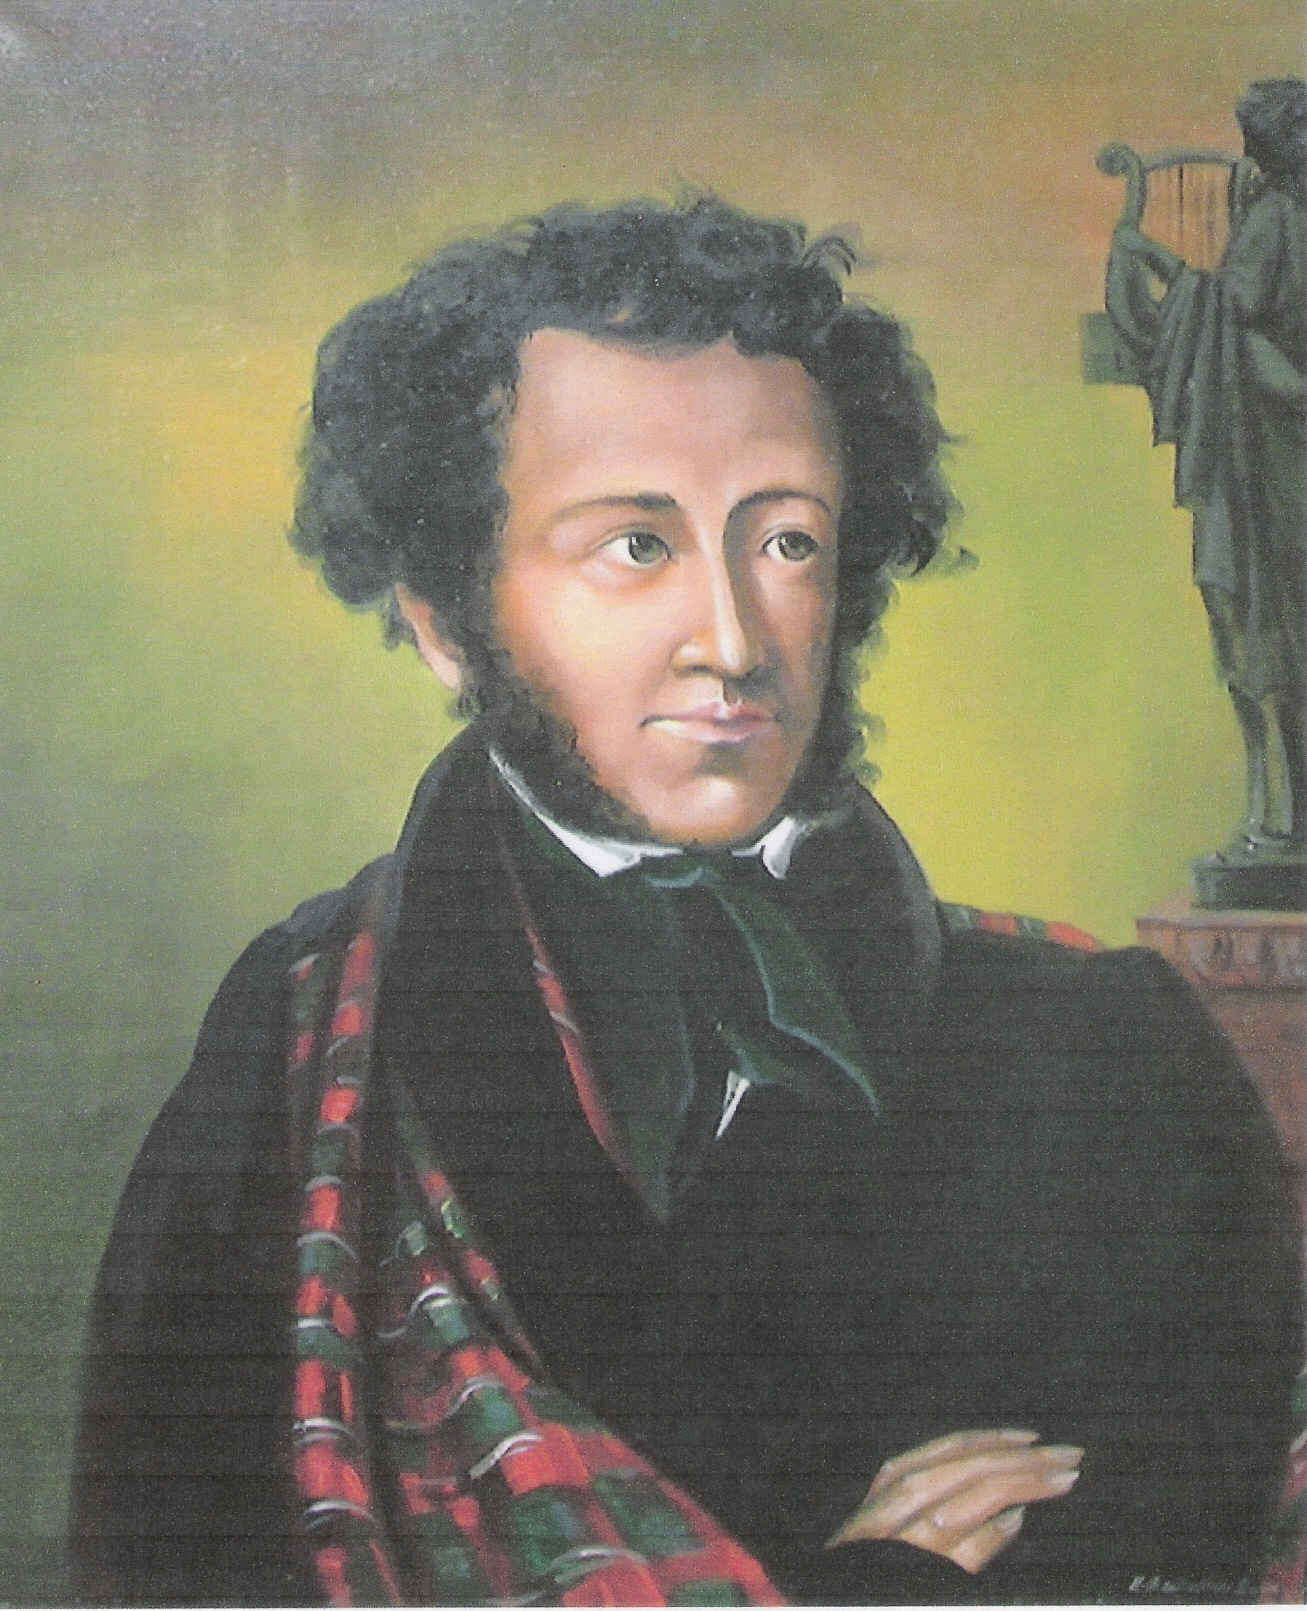 alexander pushkin Many extol alexander pushkin not only as russia's greatest poet, but also as one of the most important writers in history to have influenced russian culture.